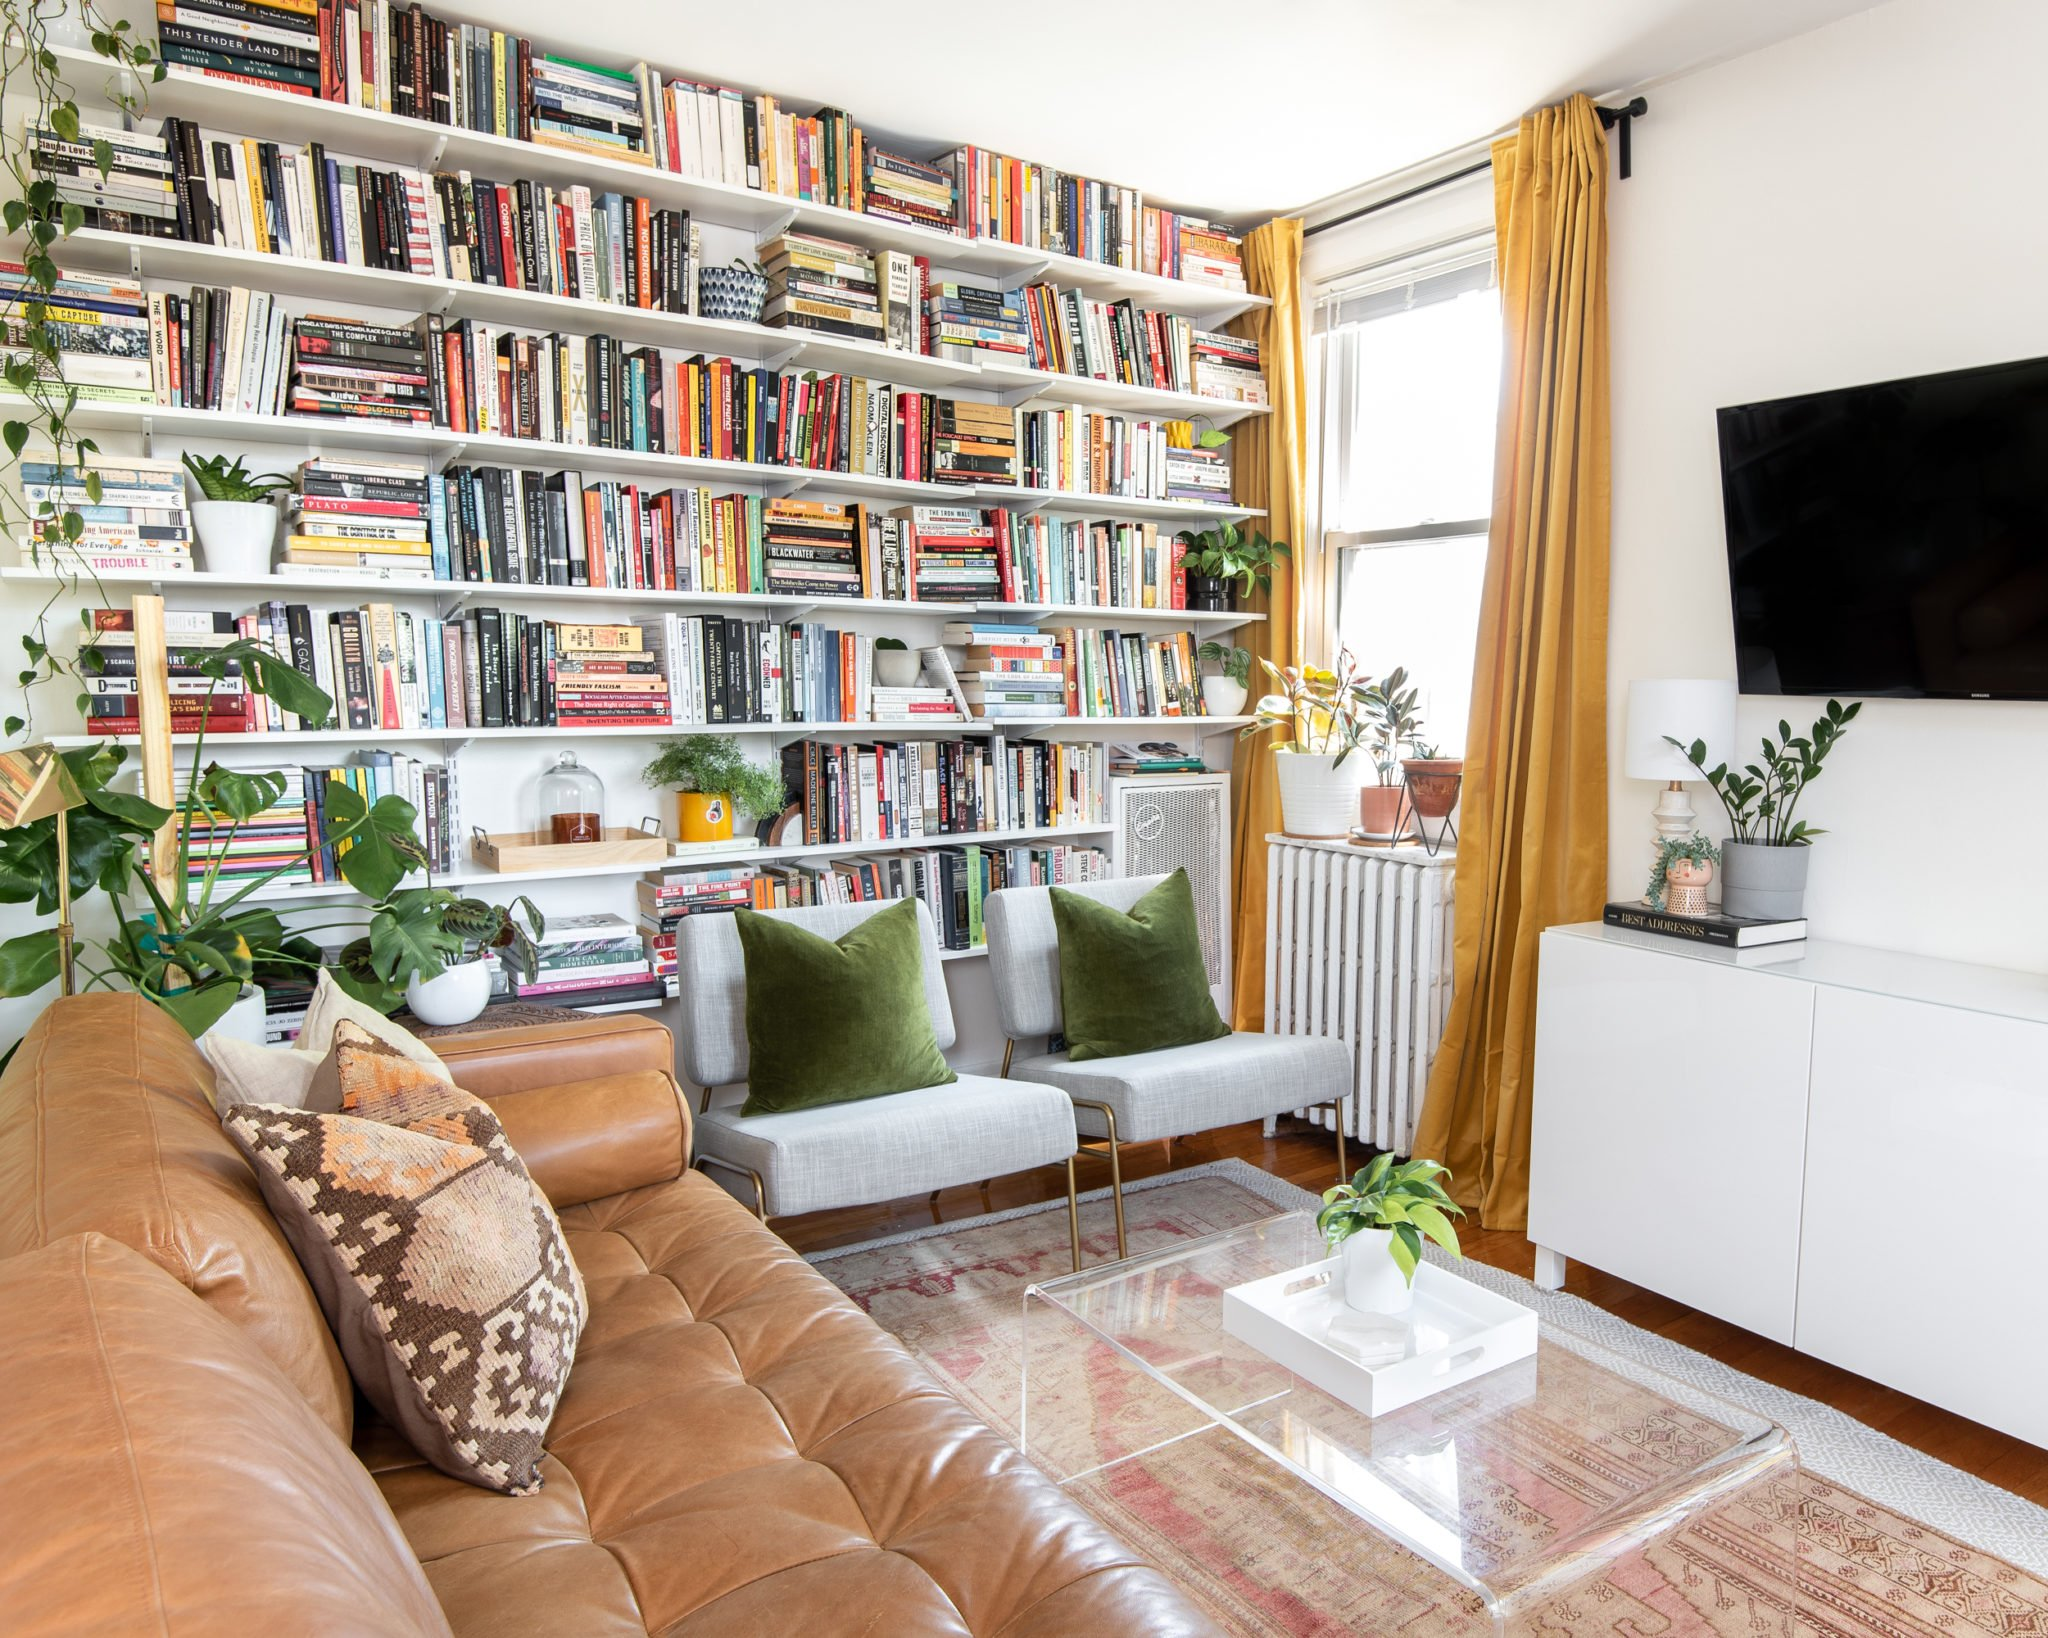 Look Inside My Home: A Park View One-Bedroom With a Floor-to-Ceiling Bookshelf, Statement Wallpaper, and Tons of Plants